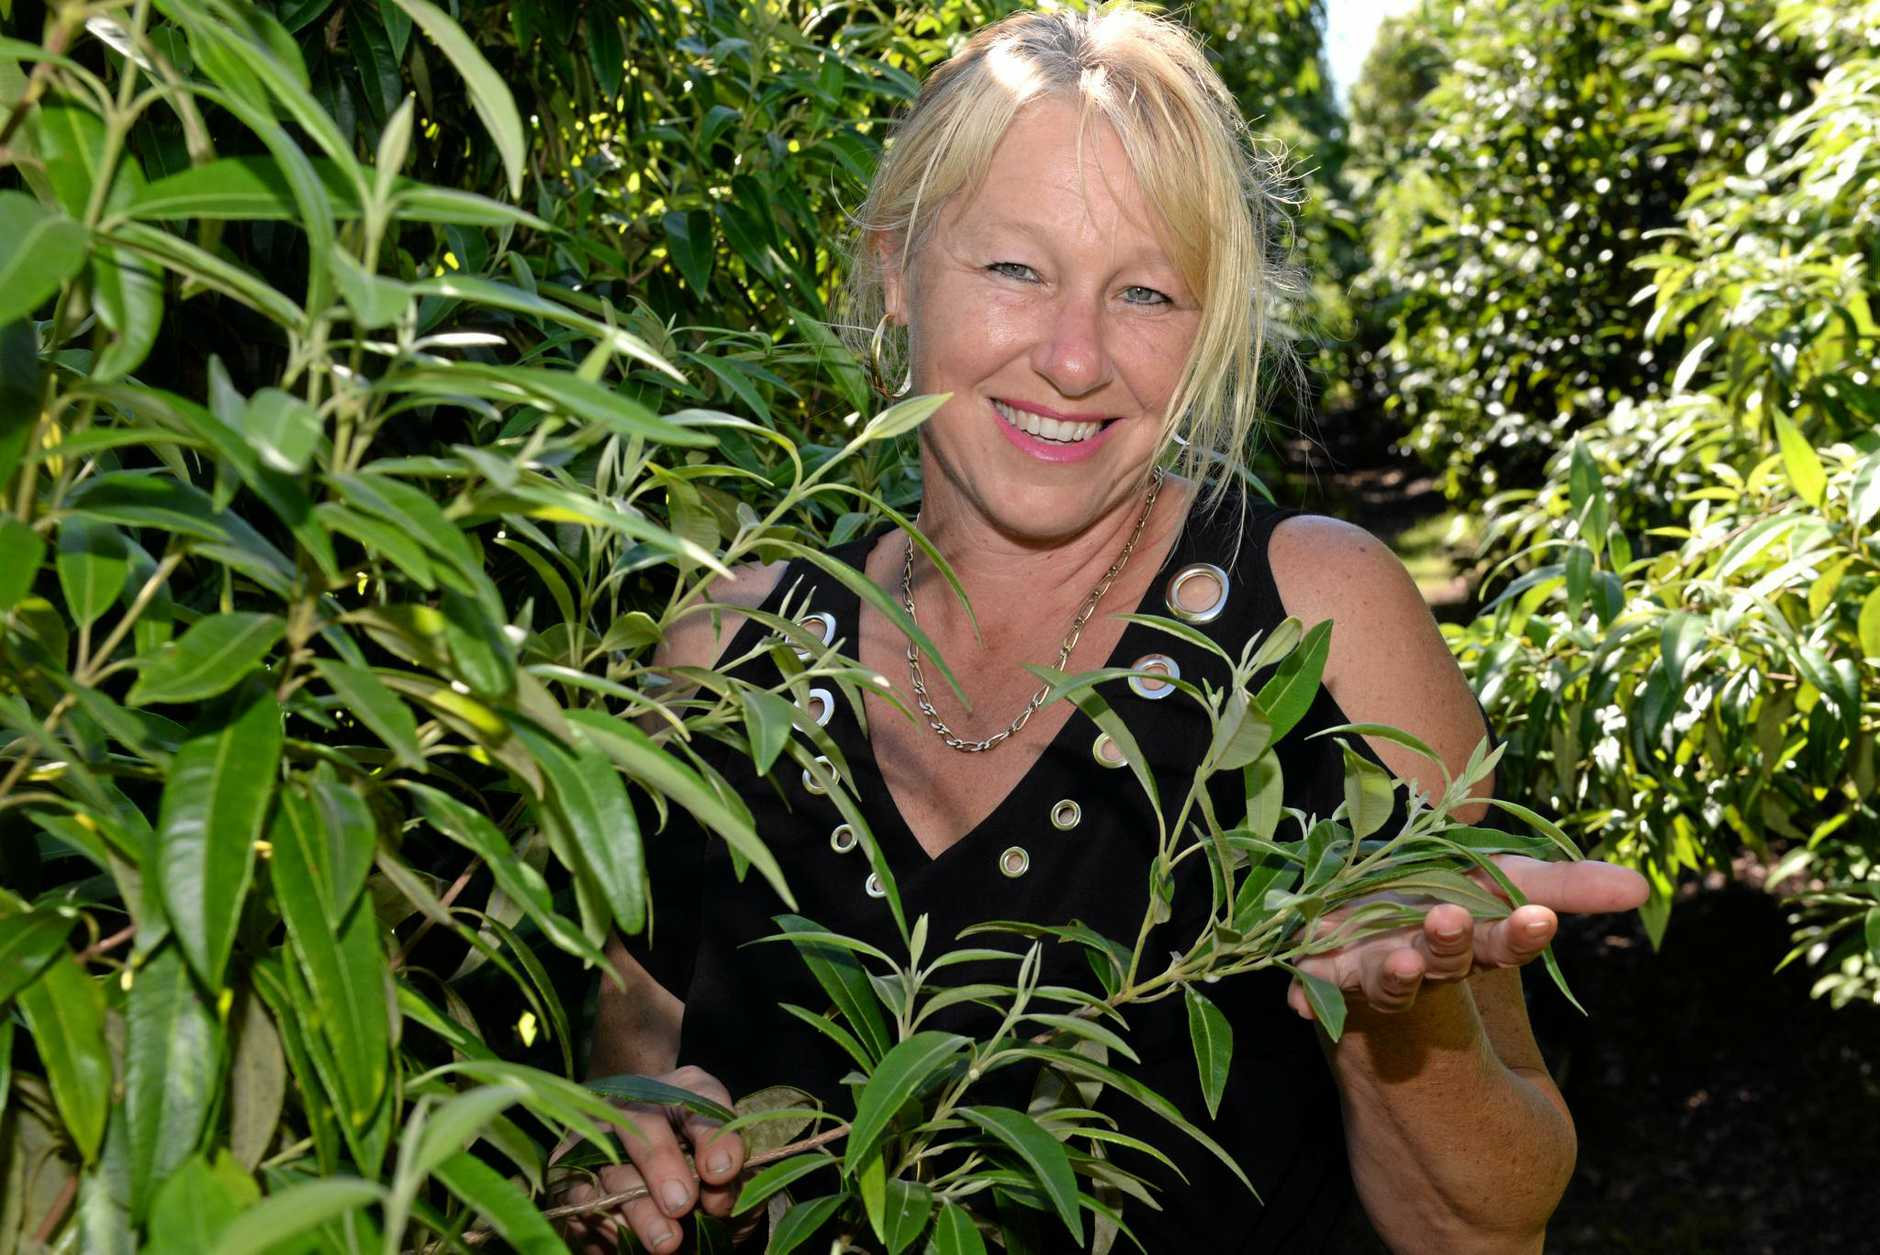 NATIVE PLANT: Fiona Walker with locally grown Lemon Myrtle. The leaves provide a great source of lemon flavour for cooking that special sweet or savoury dish.